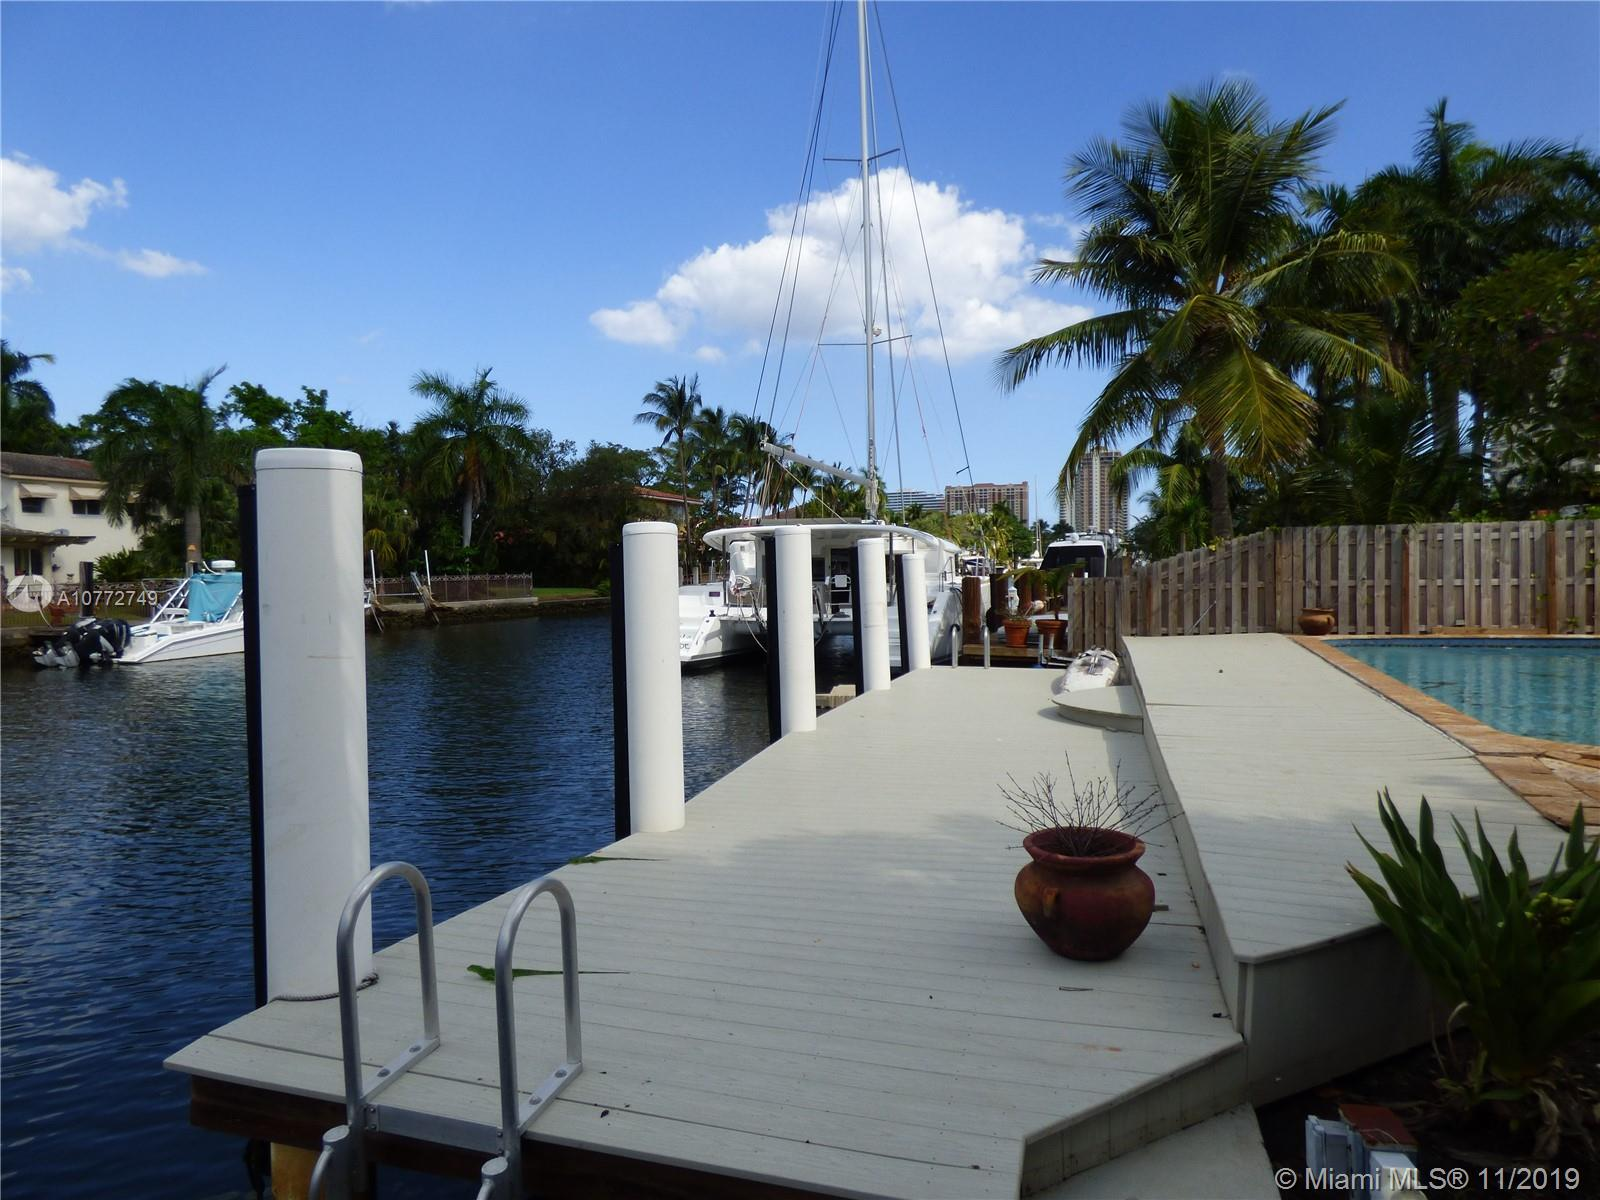 Boat owners dream. This home has 60' of deep water with reinforced sea wall. Only minutes (3 miles) to the ocean with NO fixed bridges. Renovate, knock down or move right in. Only 3/4 of a mile walk or bike to the beach and all the restaurants, shops and action that Las Olas has to offer. Seller says LET'S MAKE A DEAL Sell it now!!!!